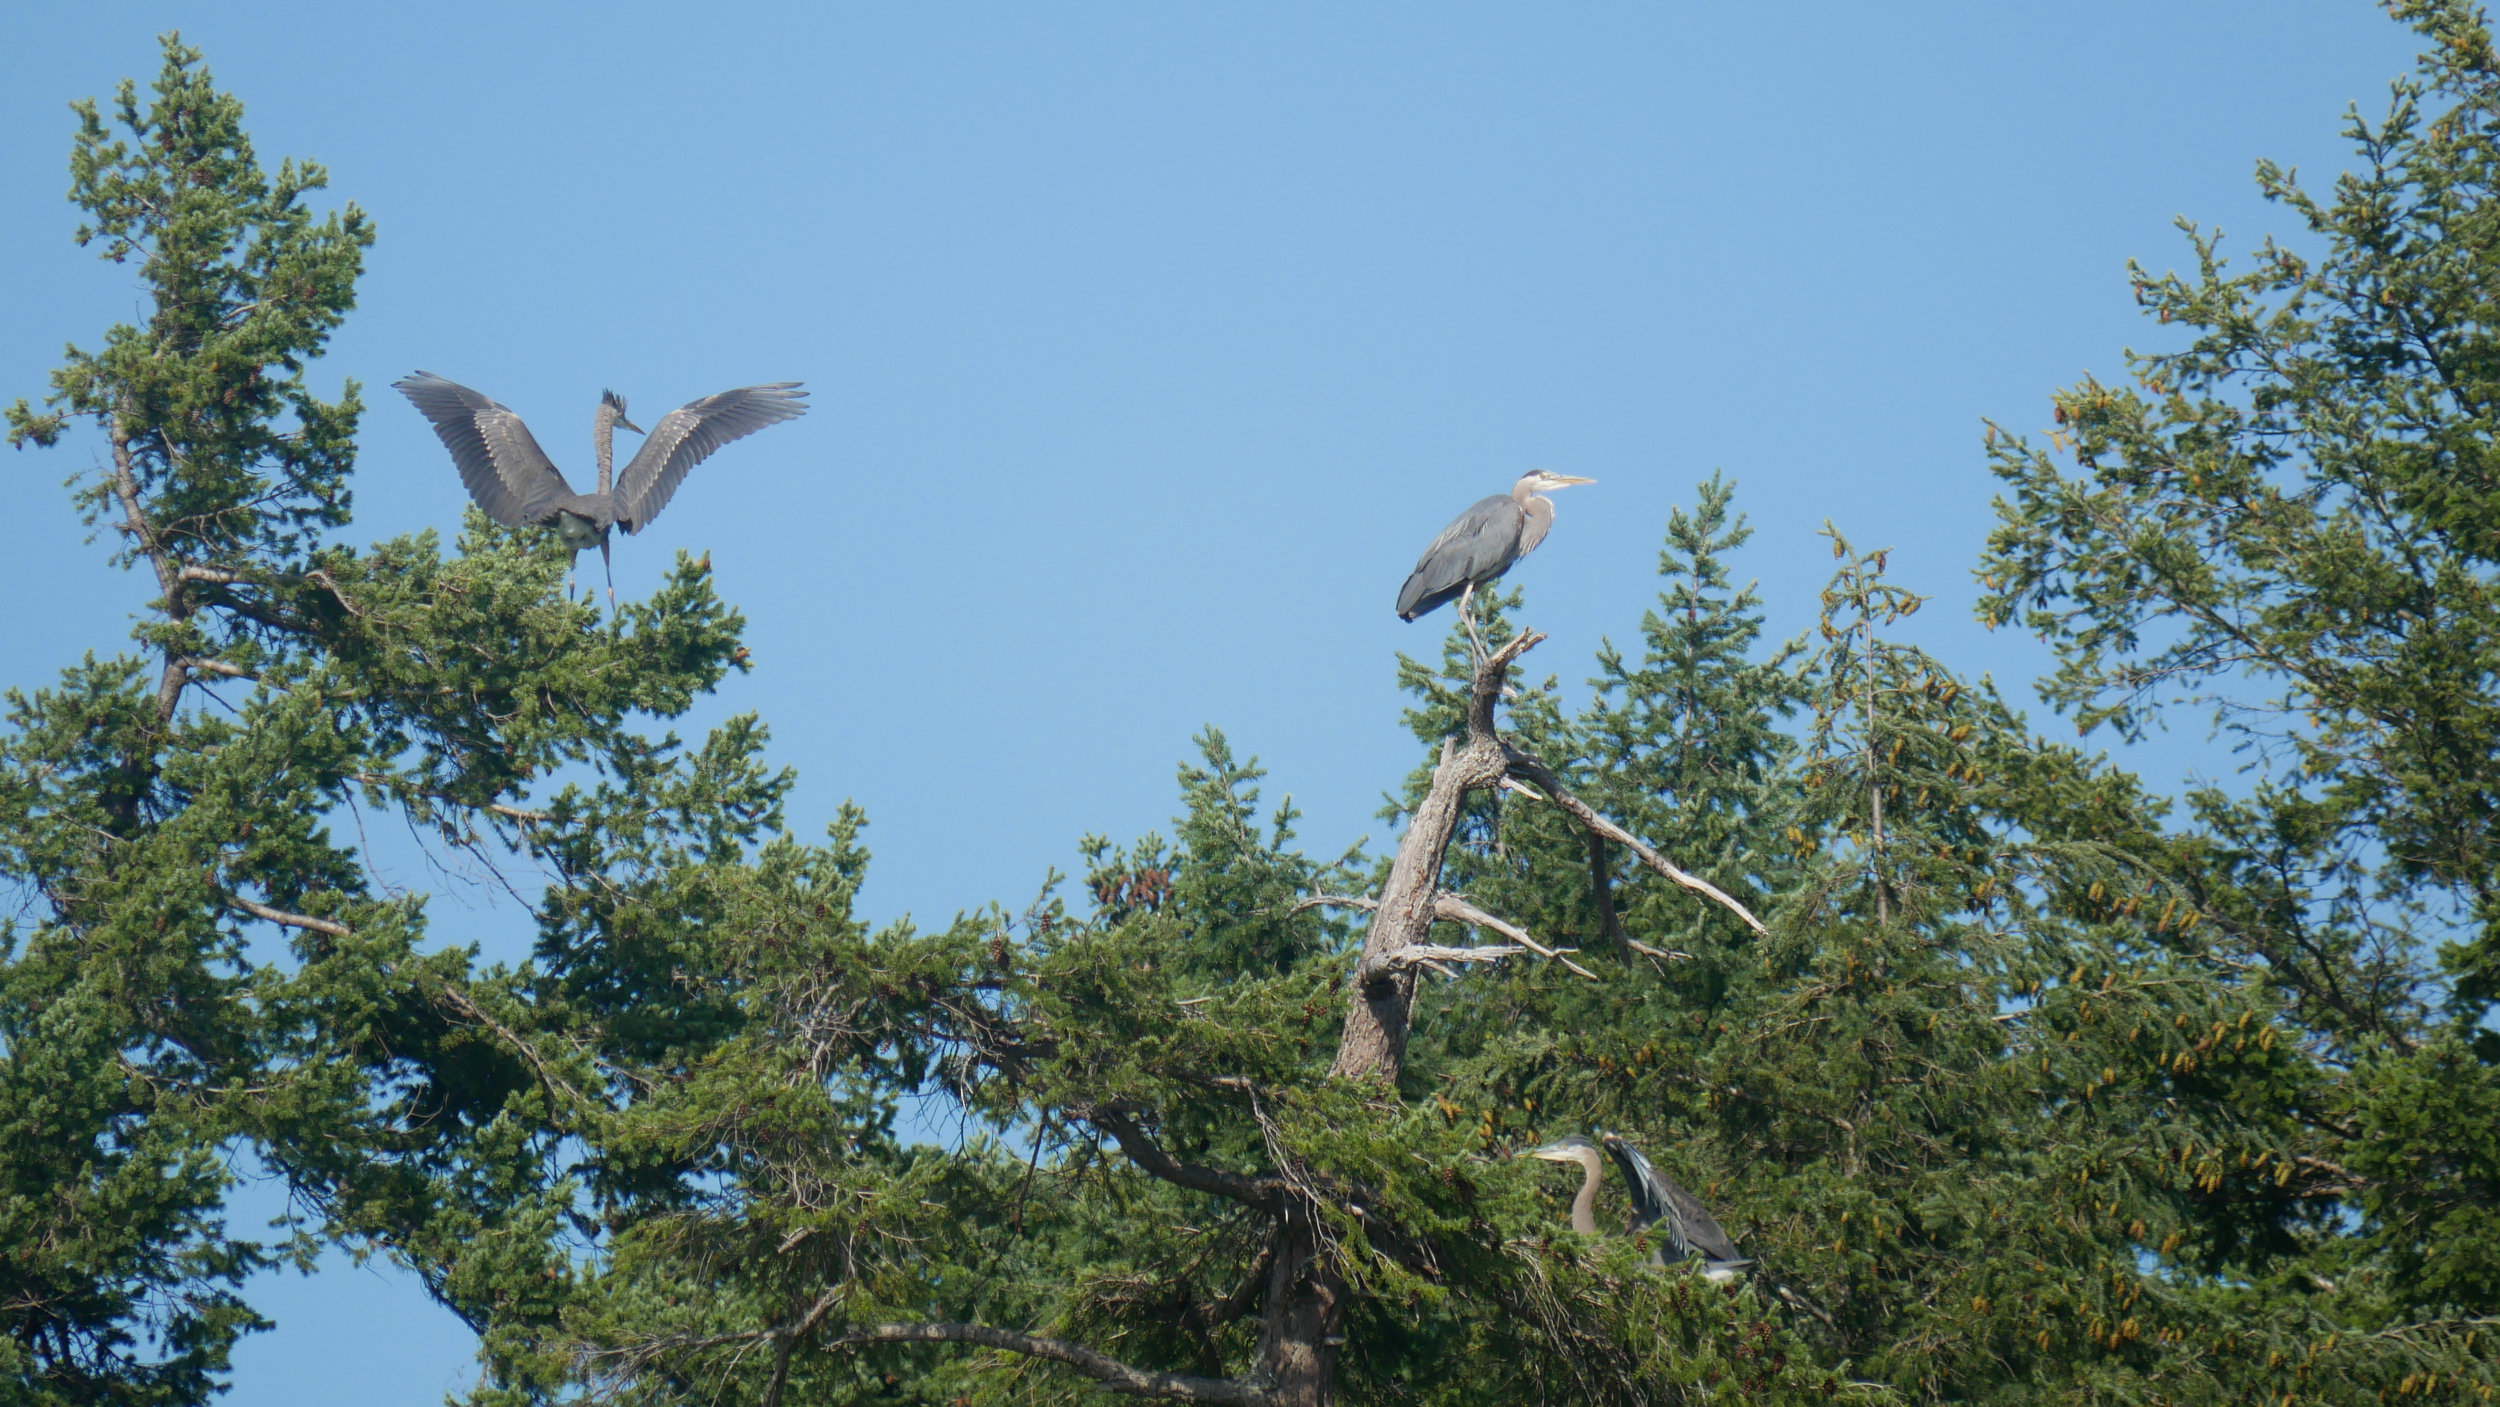 How many Great Blue herons can you see? Photo by Rebeka Pirker